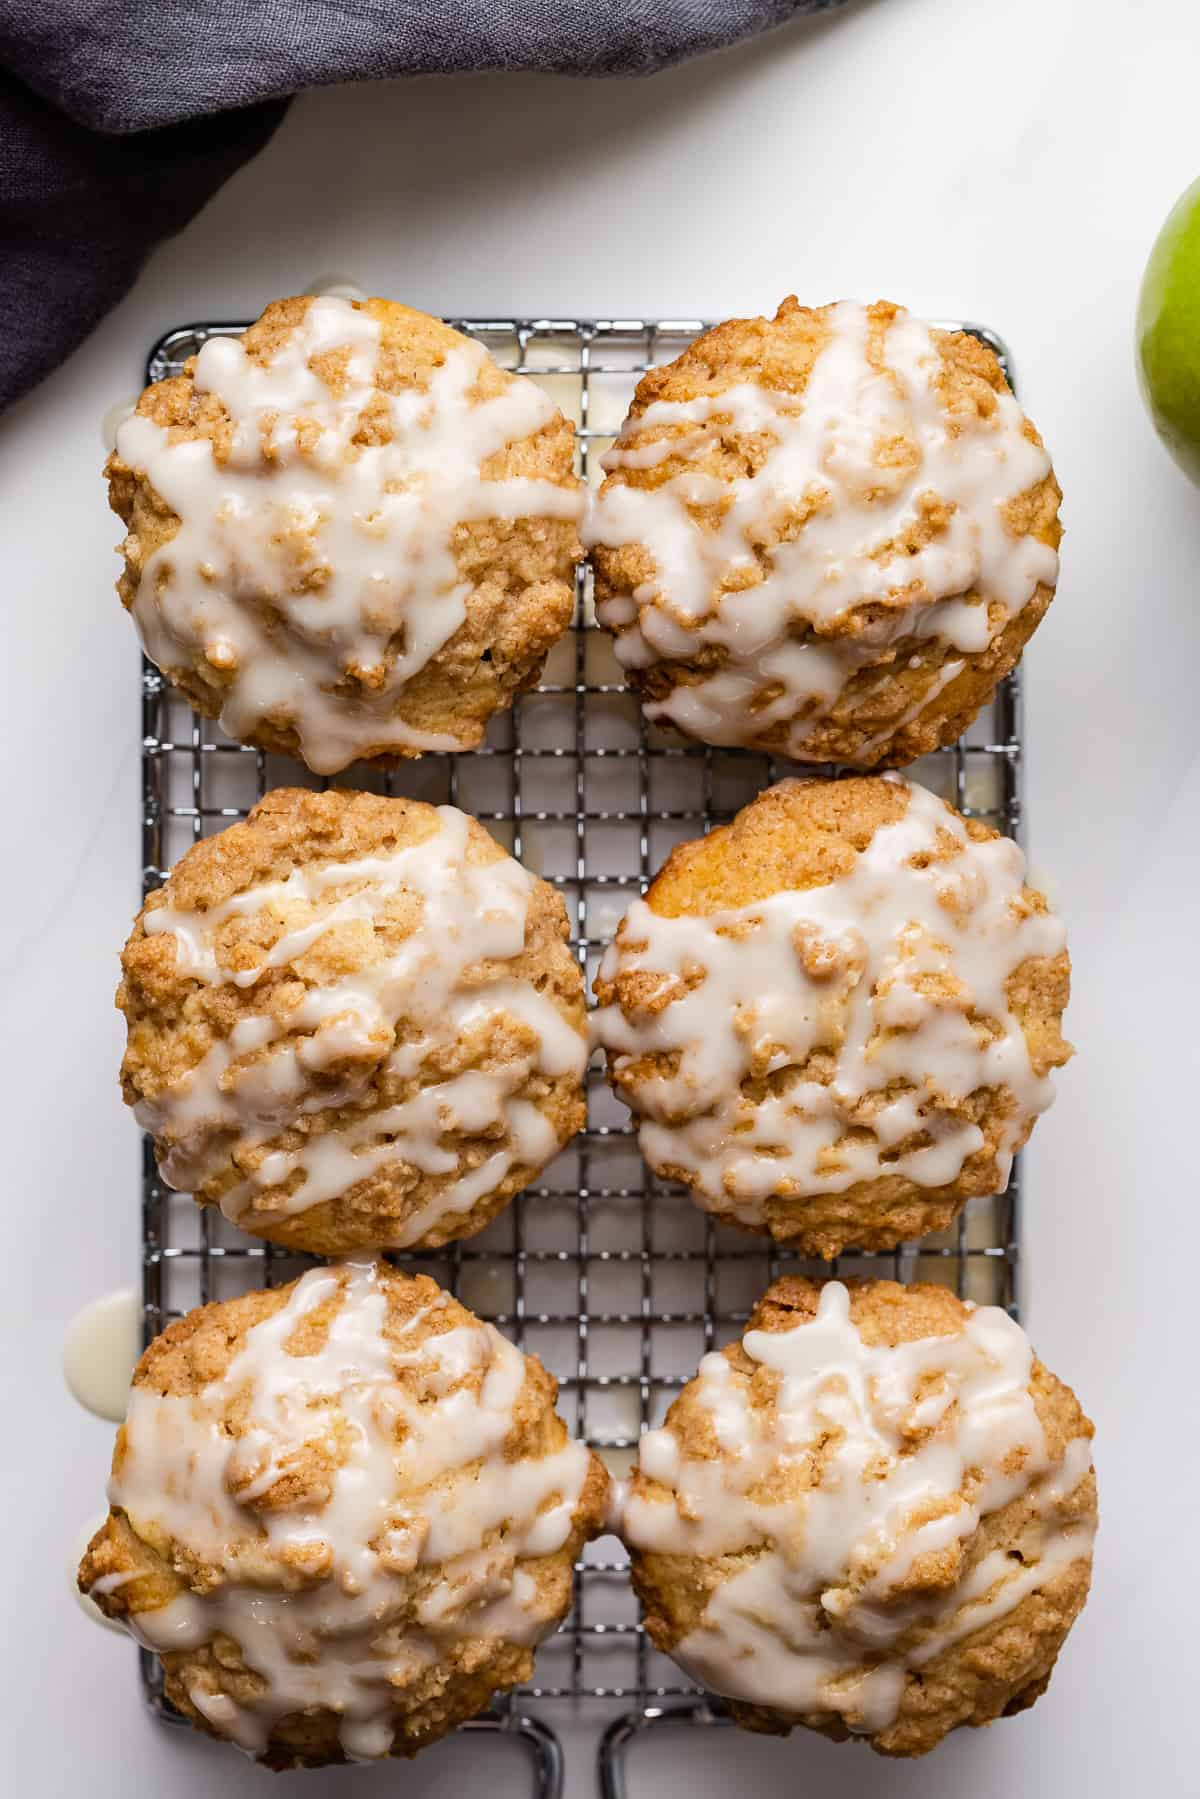 Apple streusel muffins topped with glaze on a wire rack